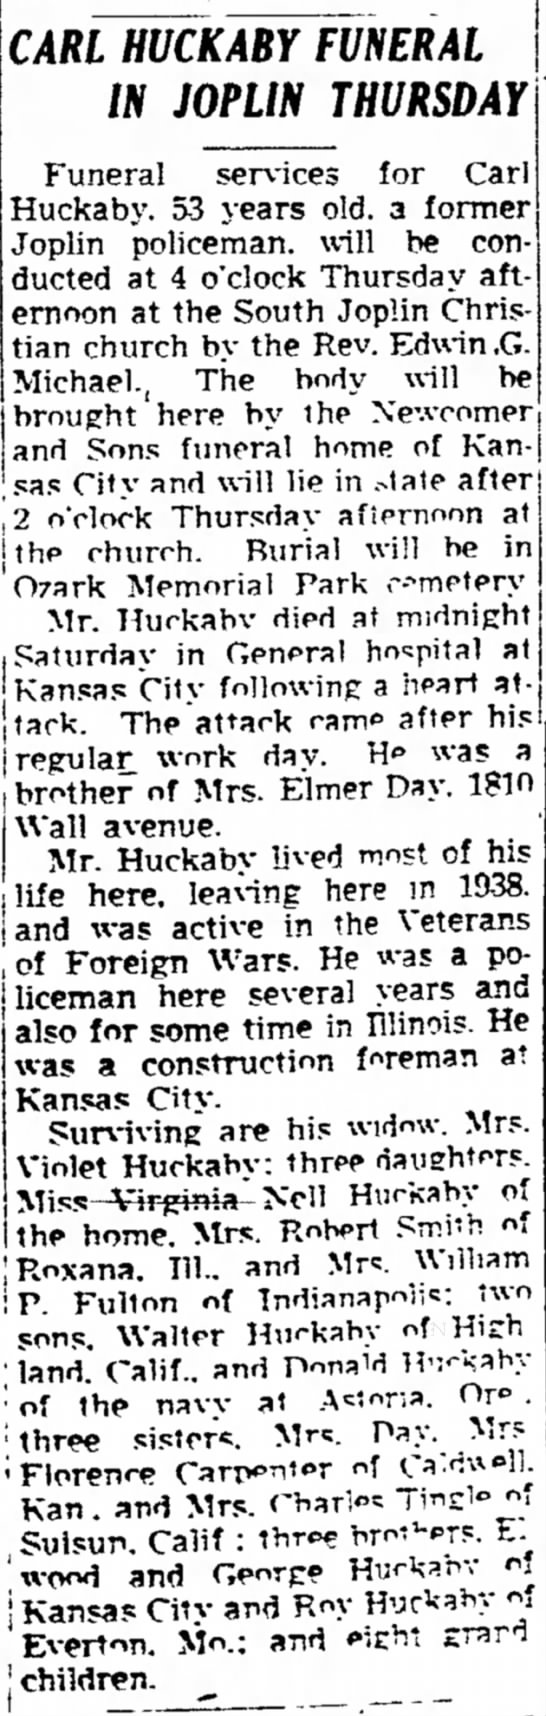 Carl Huckaby - MJCKABY FUNERAL his the IN JOPLIN THURSDAY...